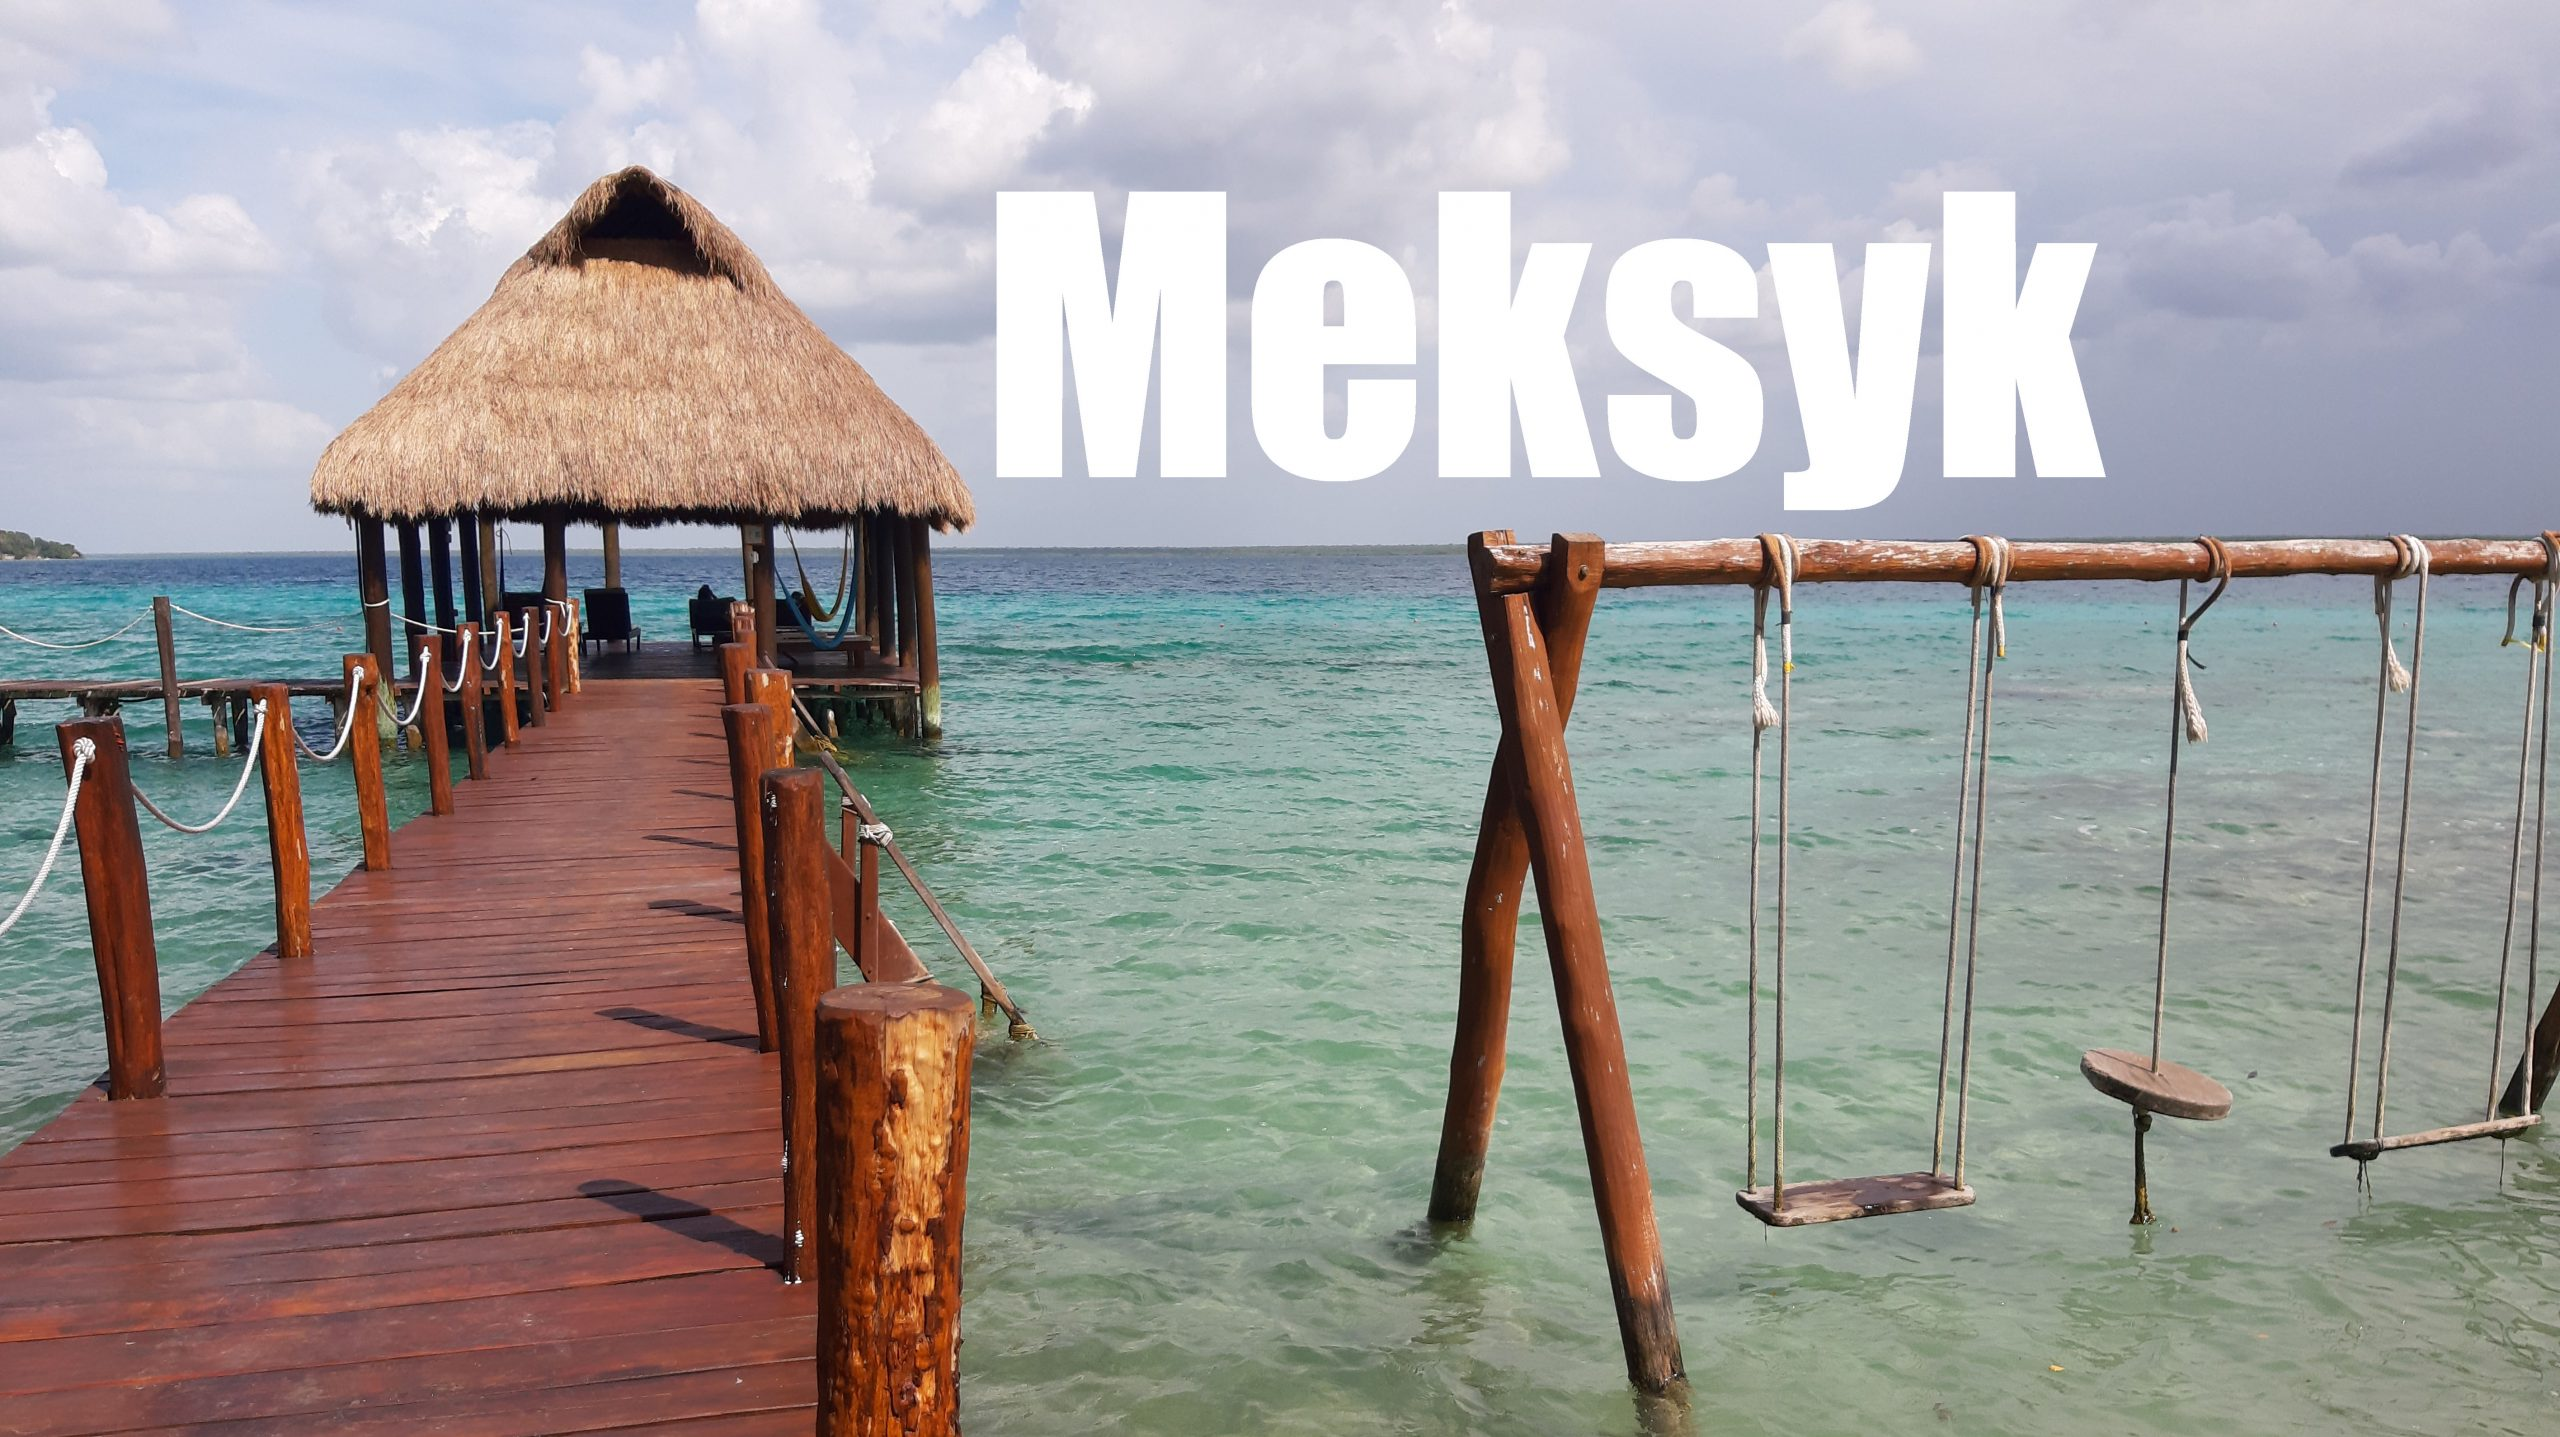 MEKsyk Mexico Bacalar lake